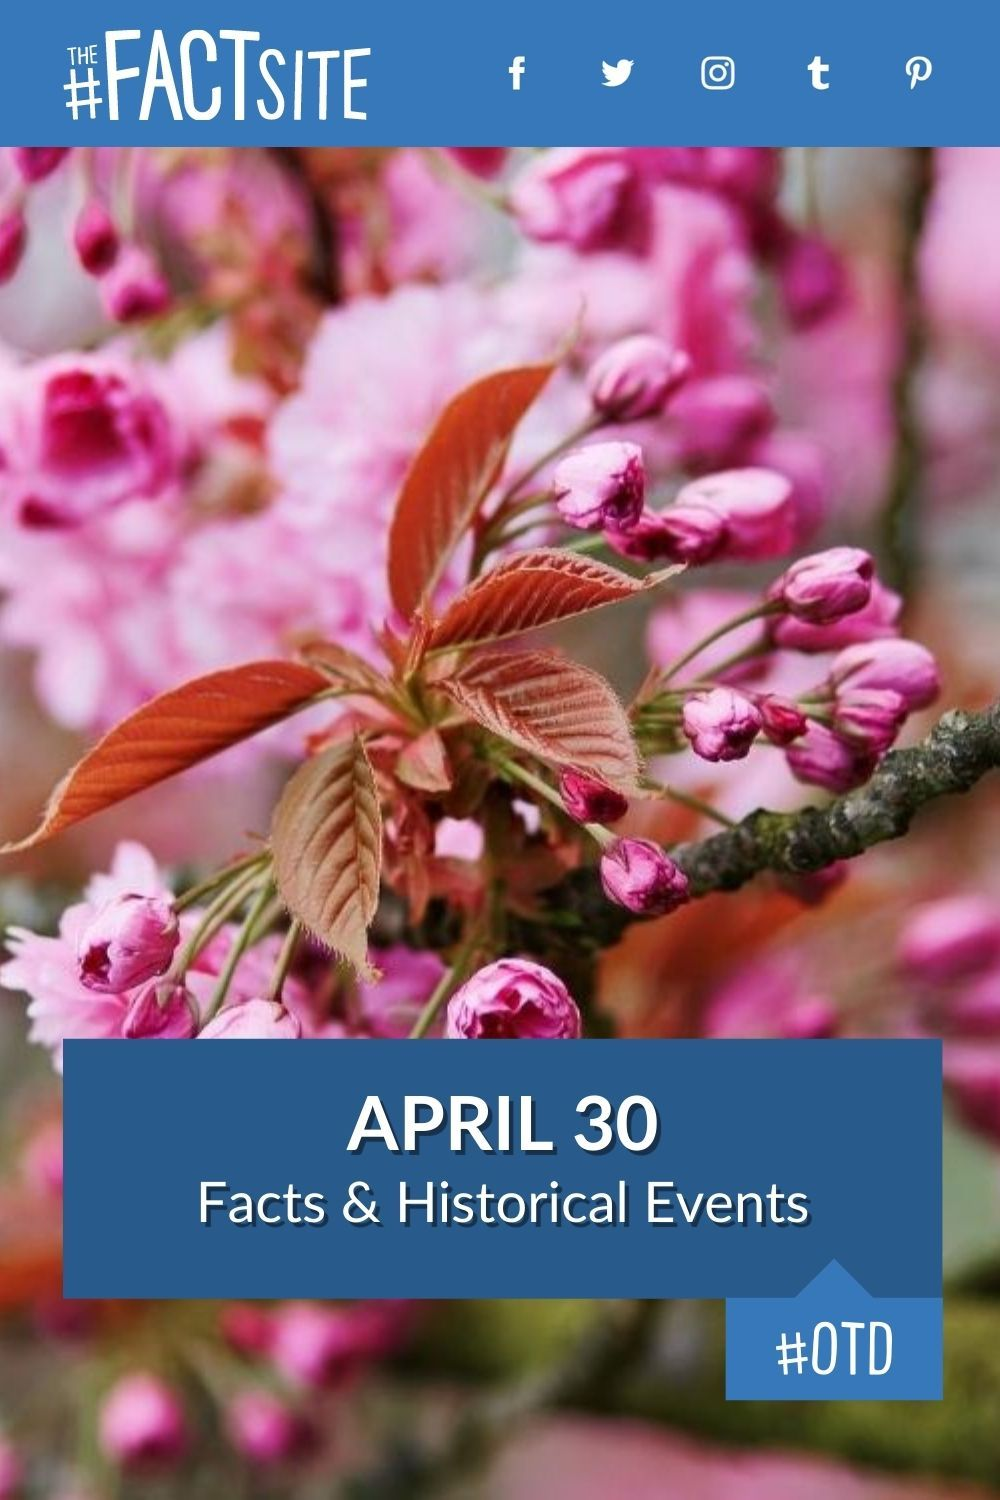 Facts & Historic Events That Happened on April 30